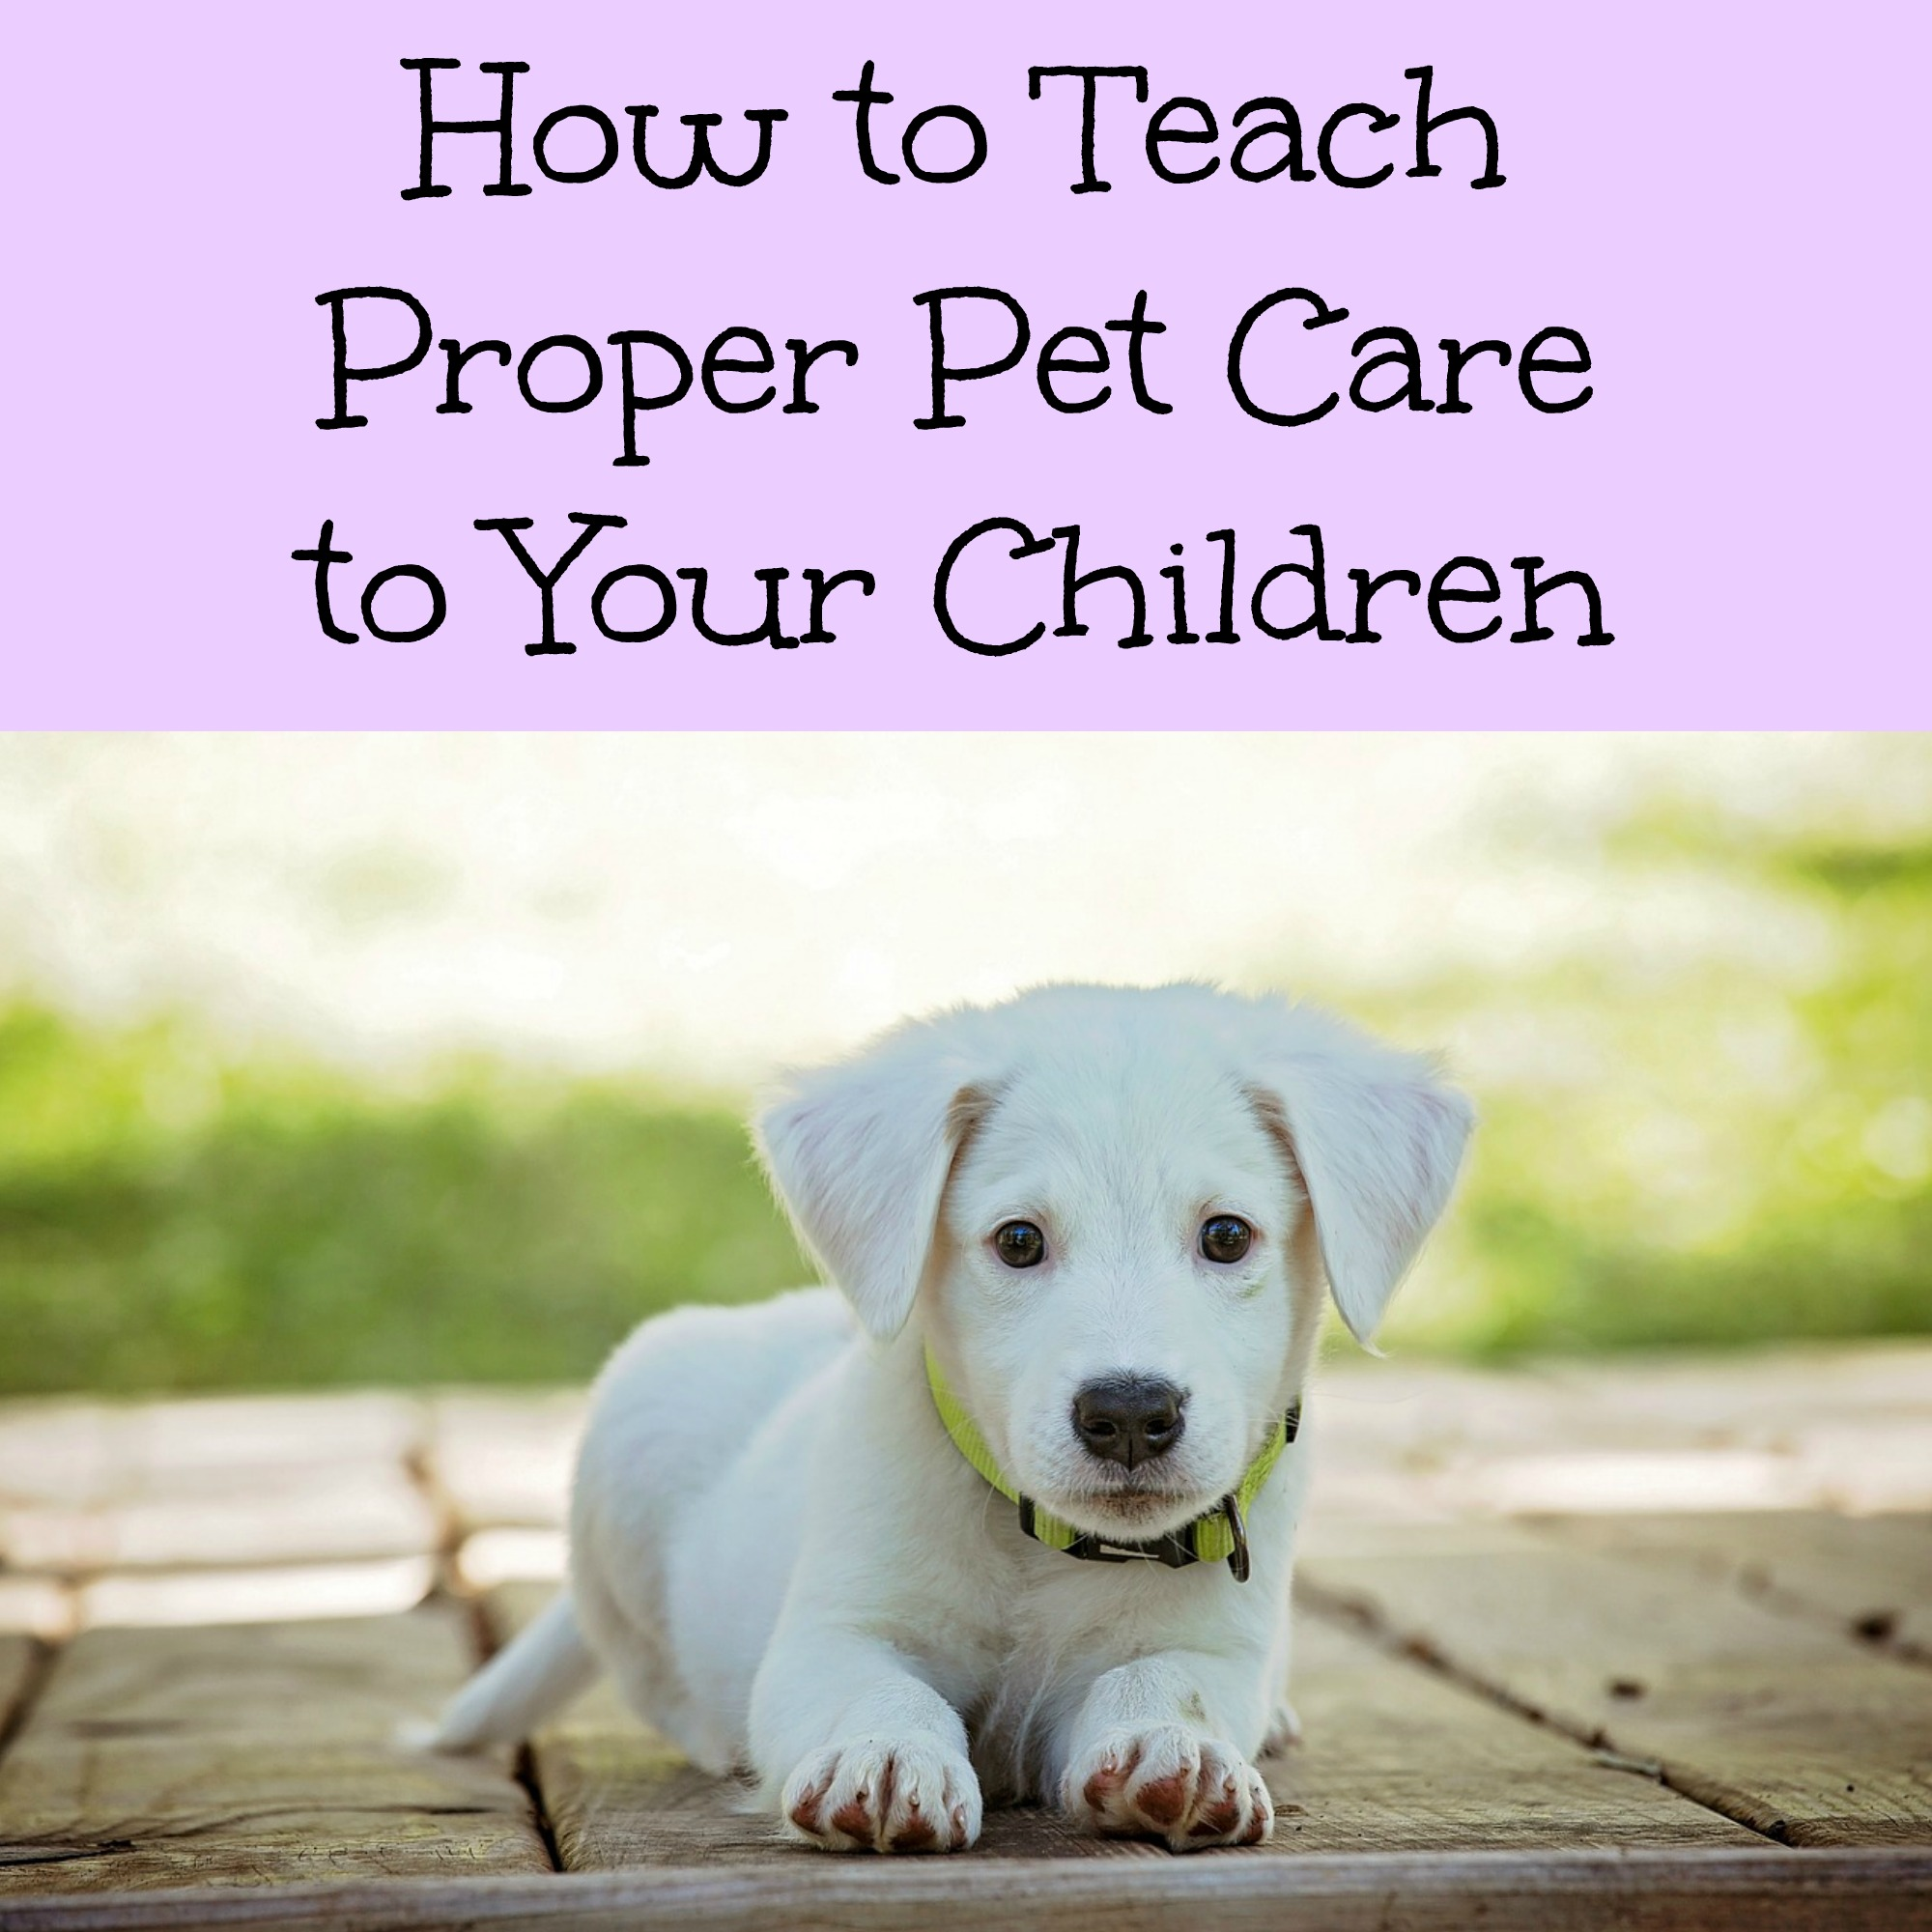 How to Teach Proper Pet Care to Your Children